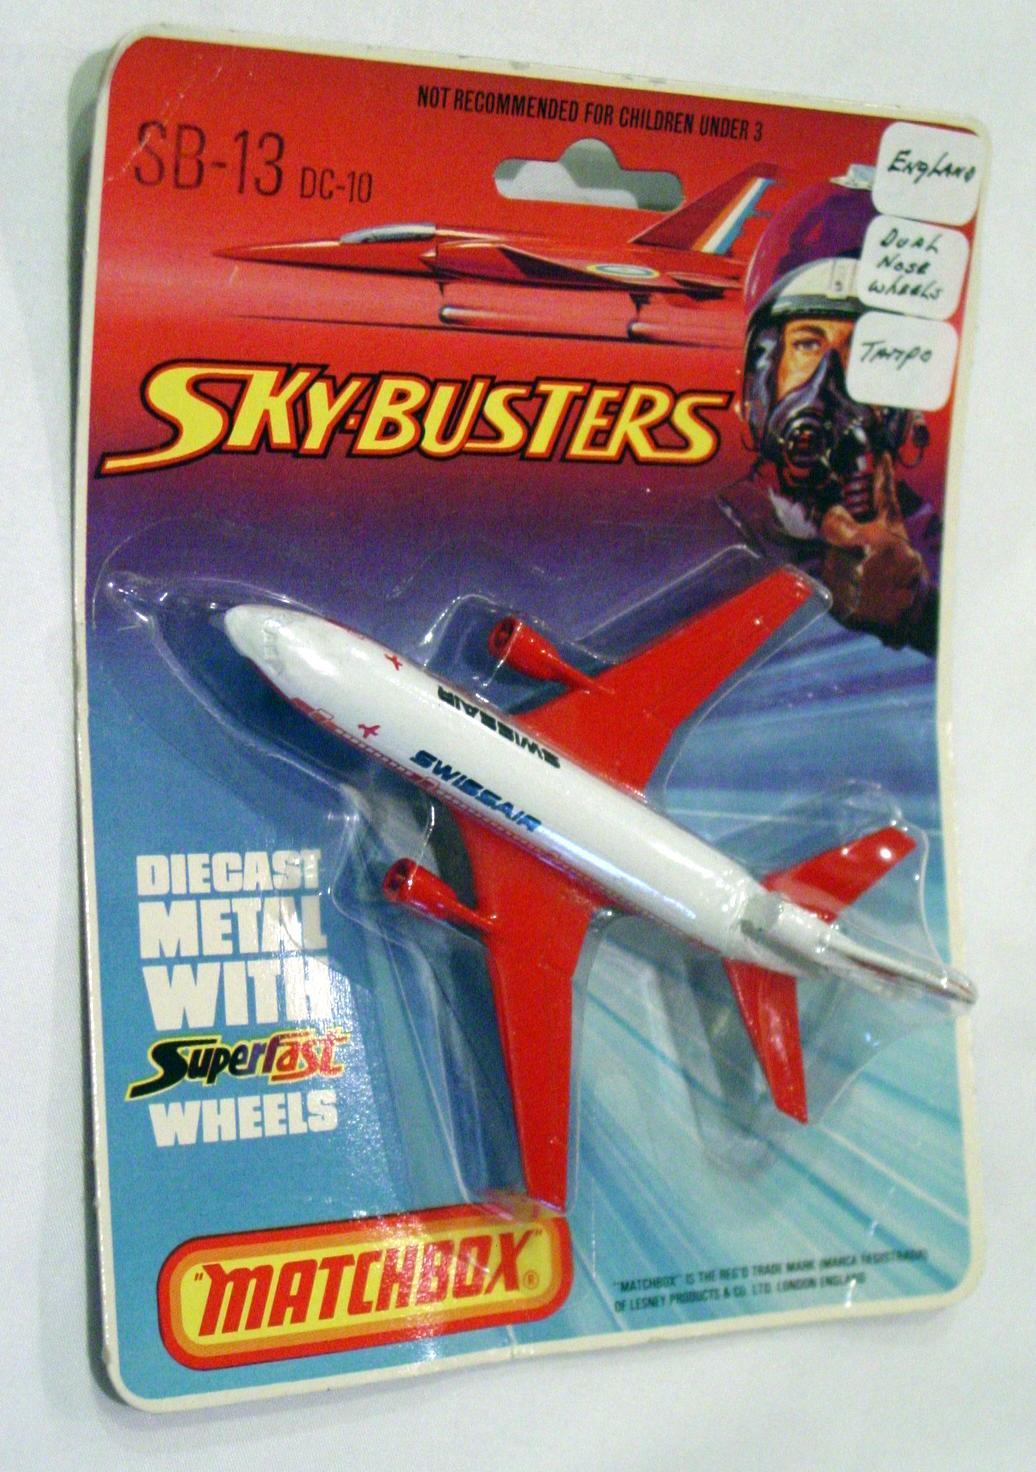 Sky Buster 13 A 4 - DC-10 White/red Swissair thick axles ENG C8.5 BP